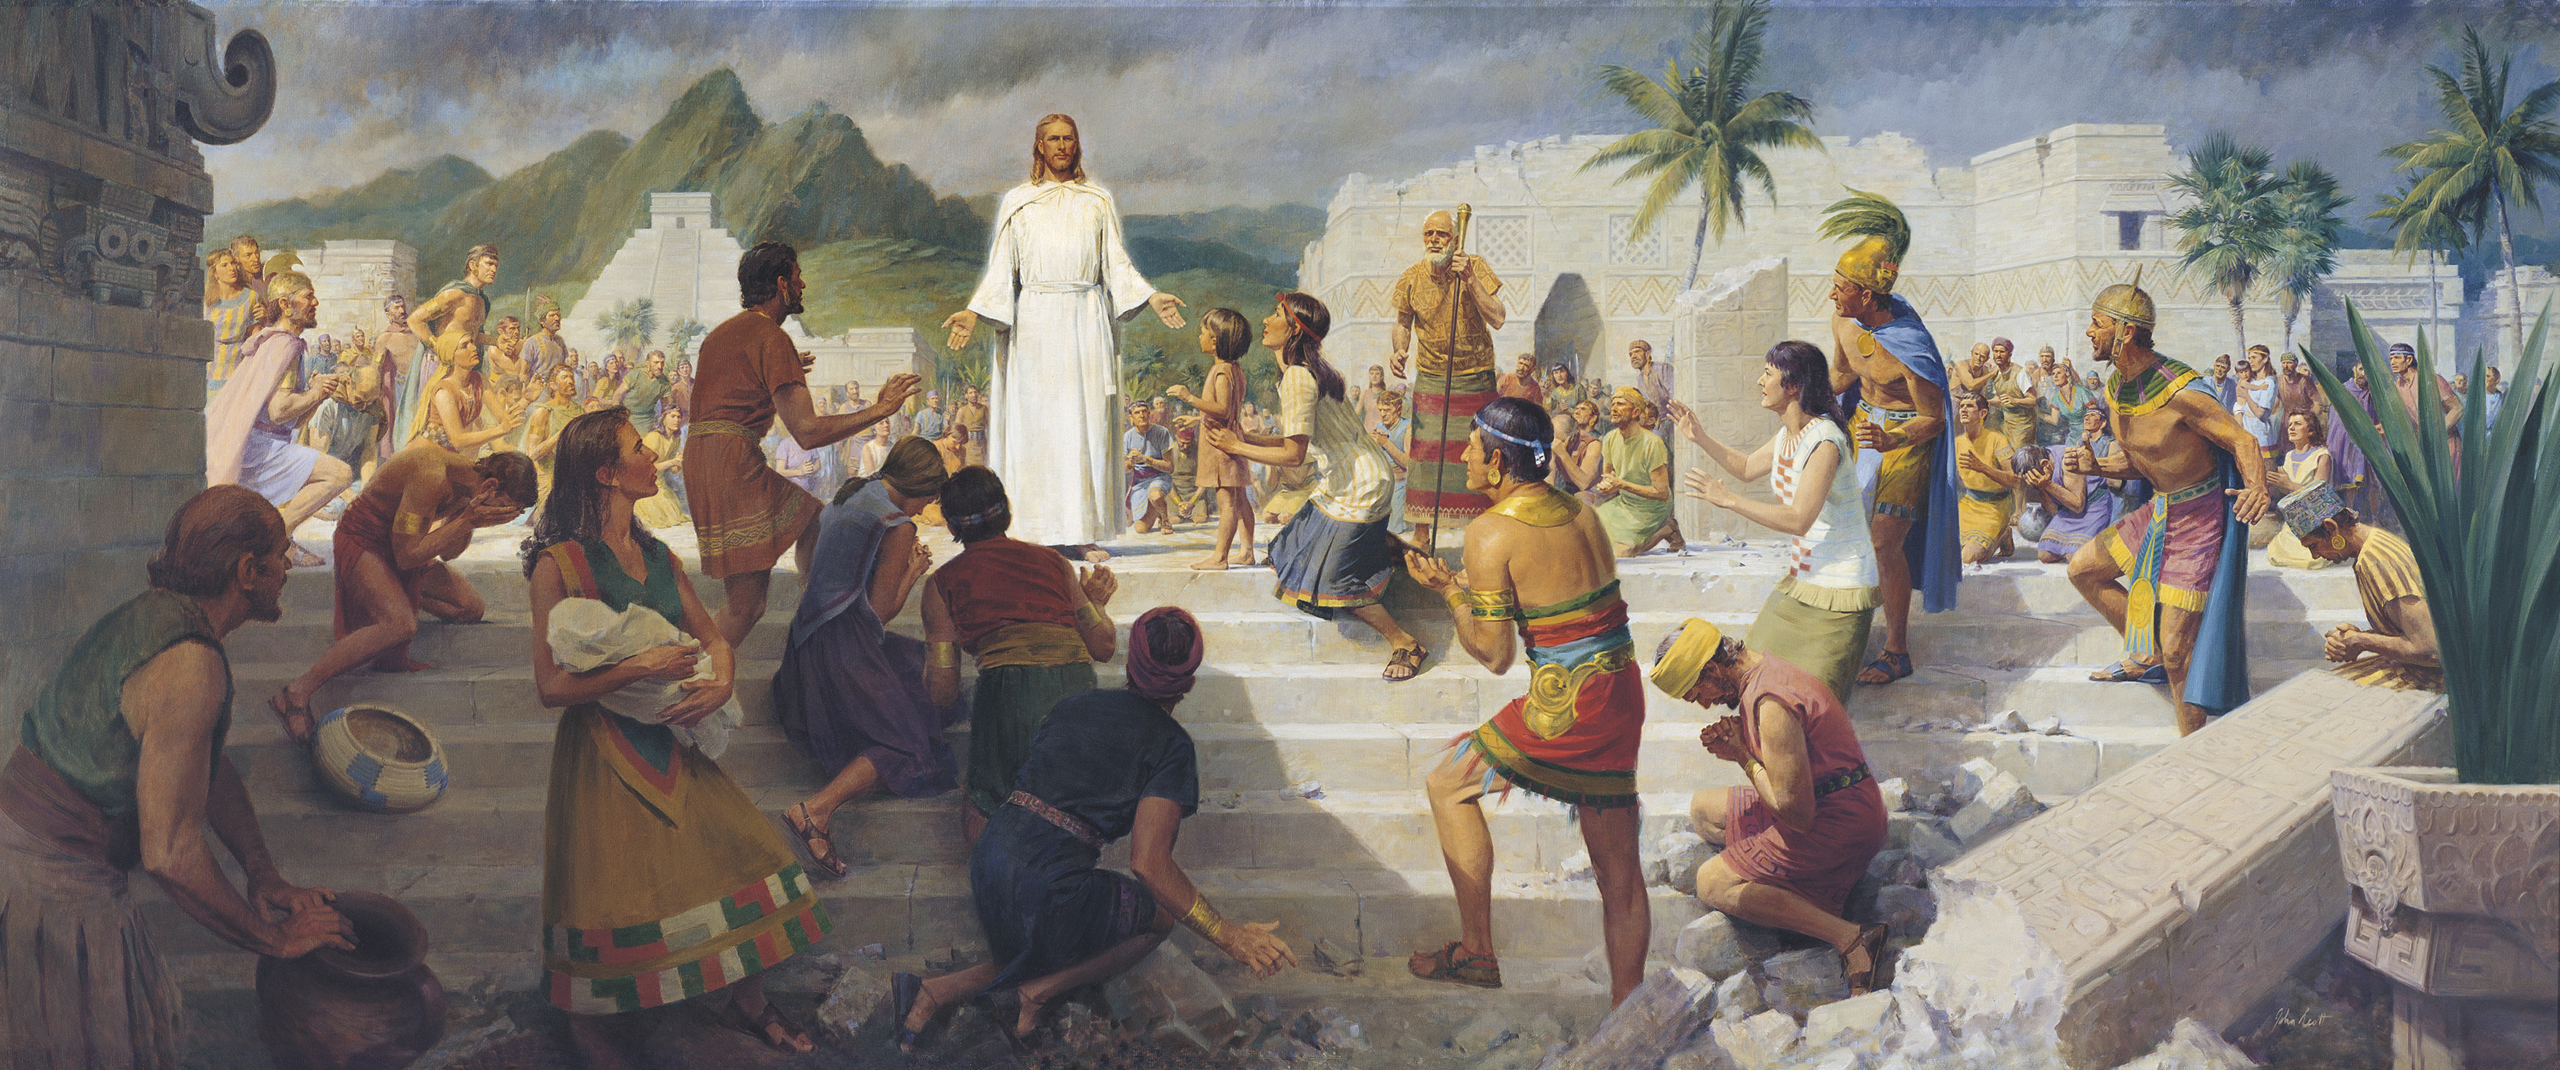 Jesus Teaching in the Western Hemisphere (Jesus Christ Visits the ...